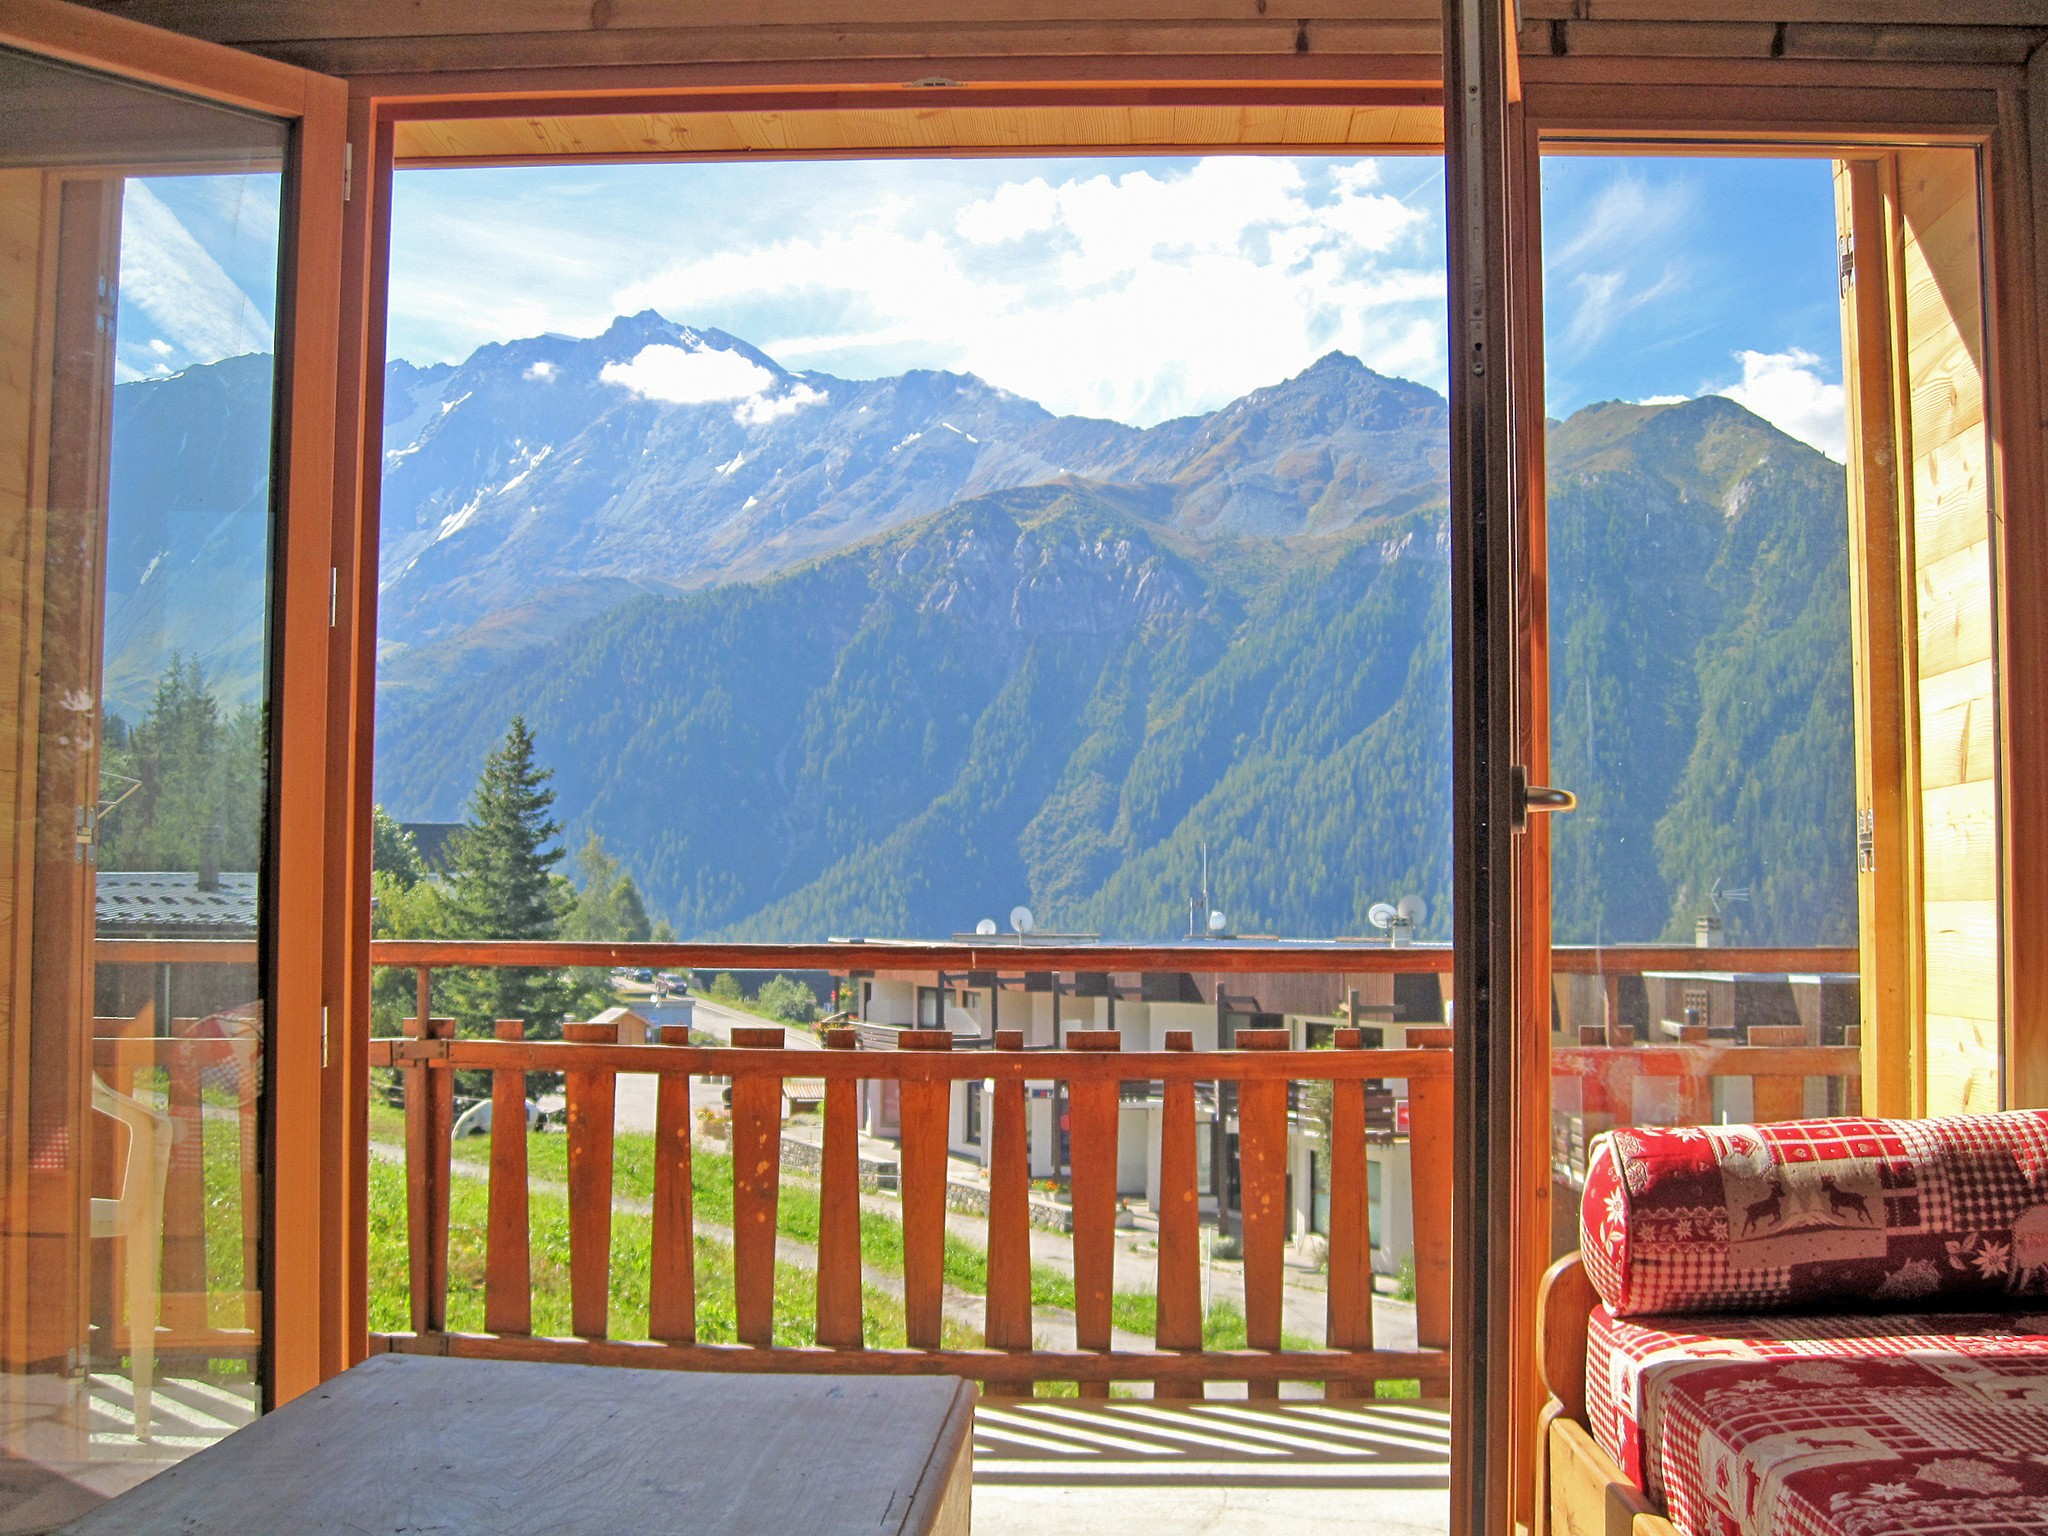 Chalet Pierra Menta - panoramic view